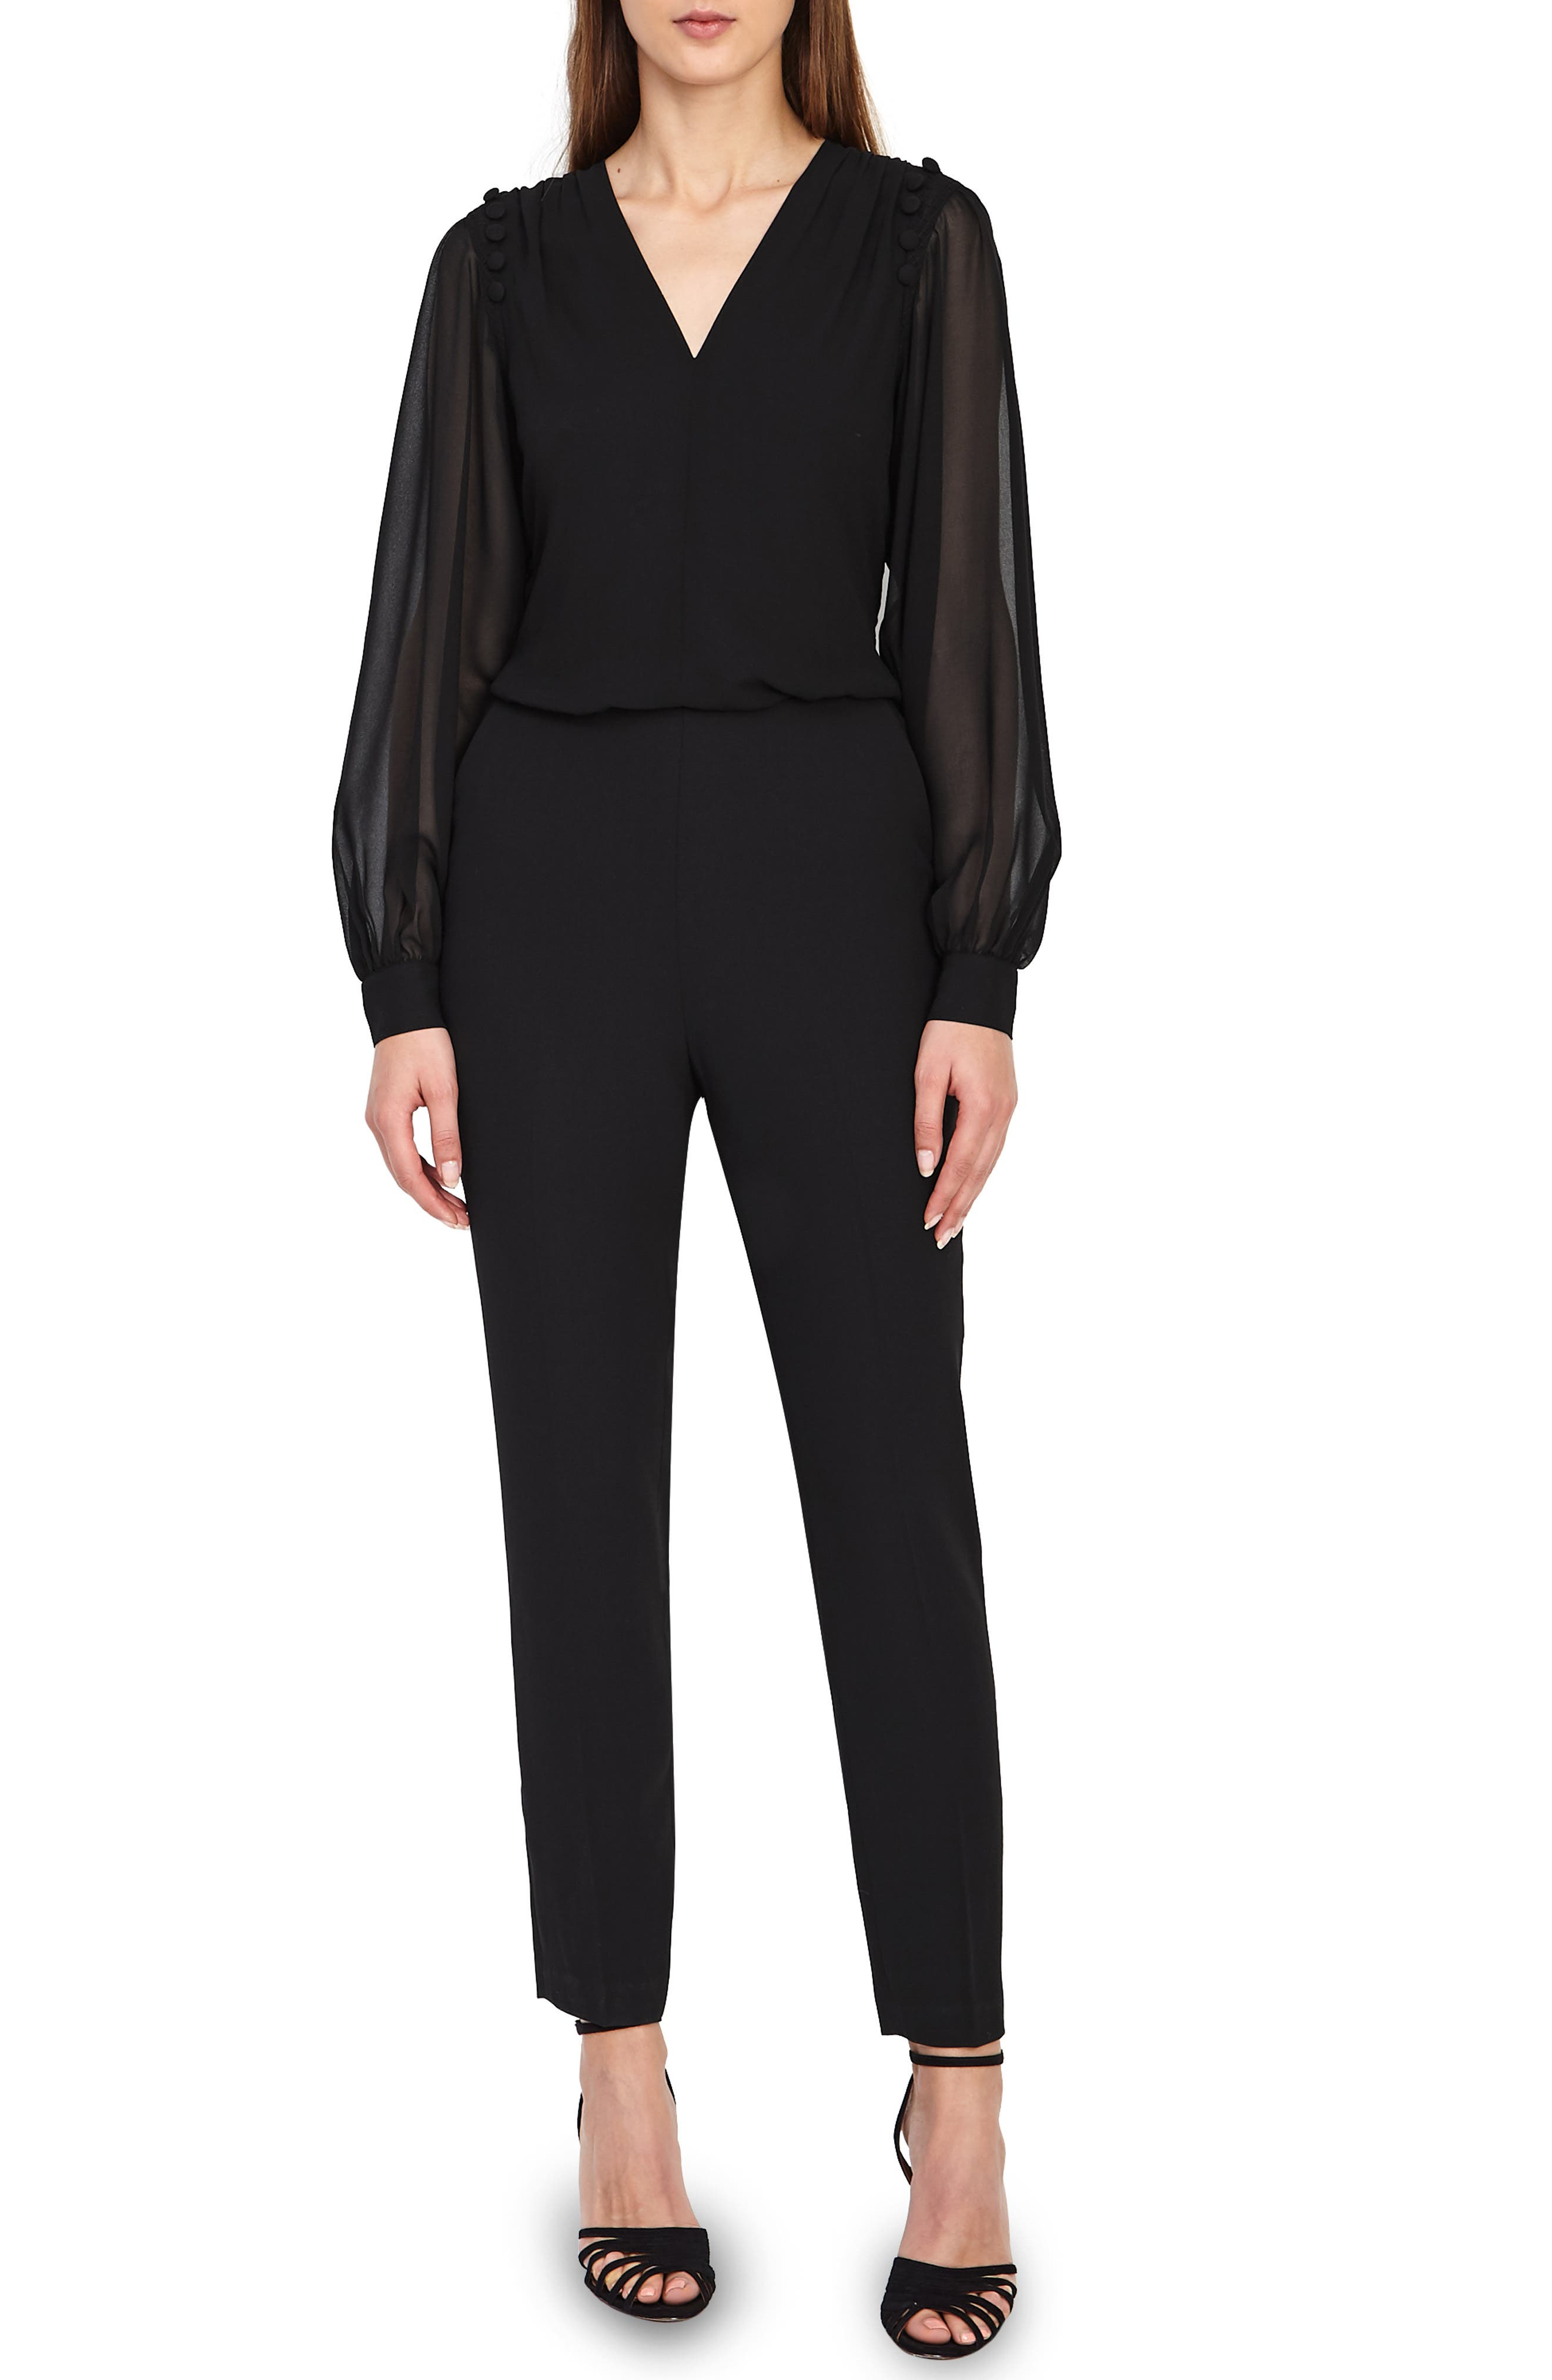 REISS Adeliza Button Detail Jumpsuit in Black